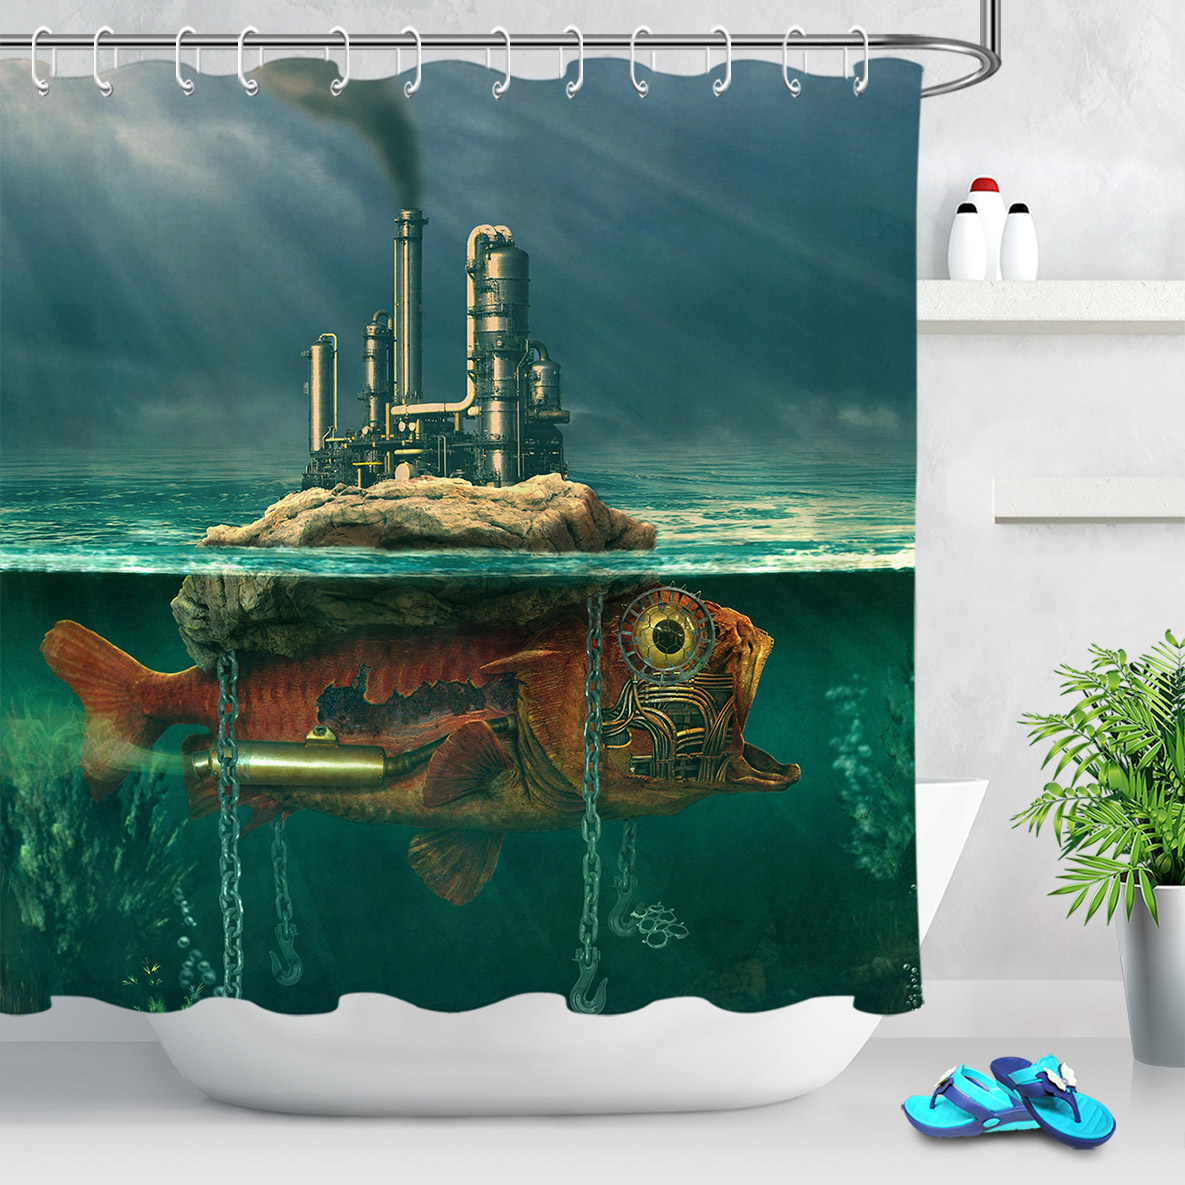 2020 Retro Steampunk Mechanical Fish Shower Curtain For Bathroom Art Decor Creative Underwater Life Waterproof Fabric Shower Curtains From Narciss 26 02 Dhgate Com